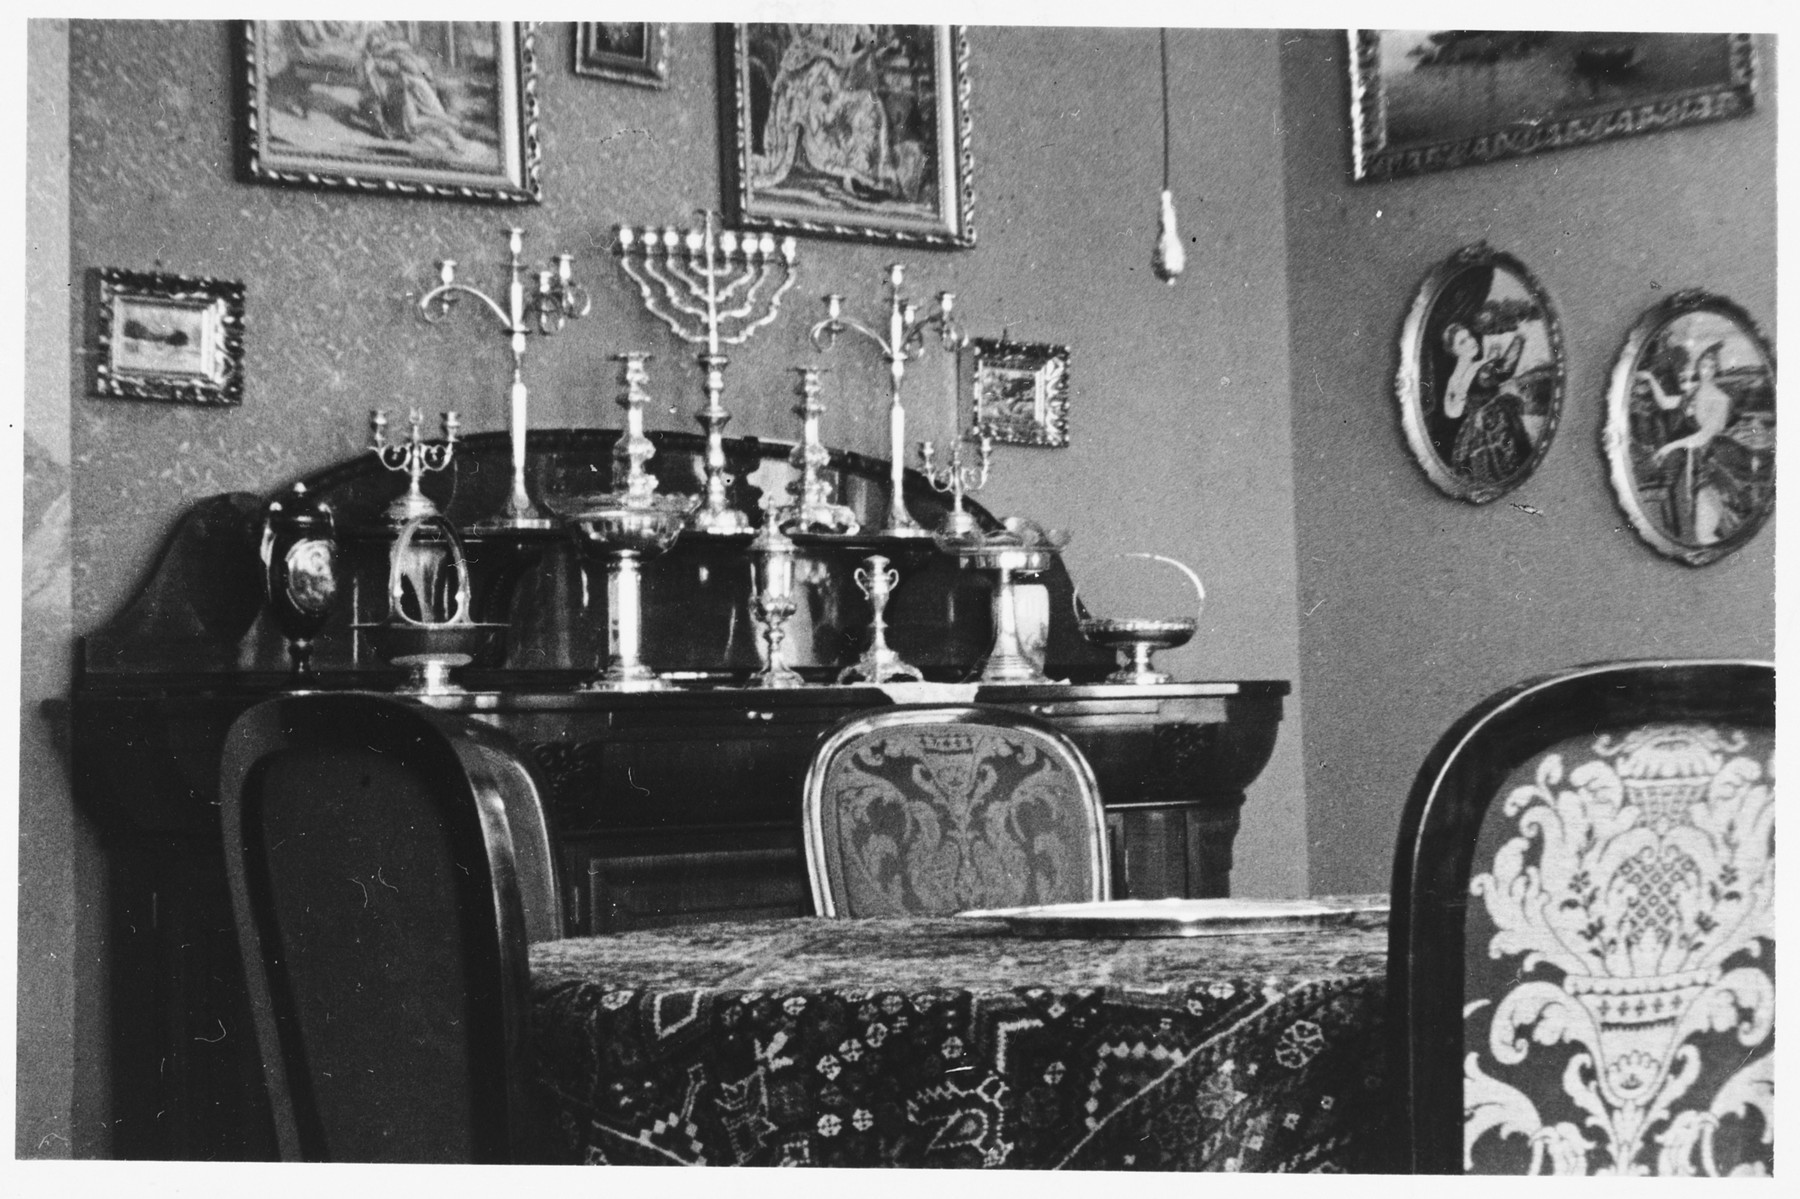 View of the silver religious articles on the dining room buffet in the home of Piroska and Hugo Rosenberger.